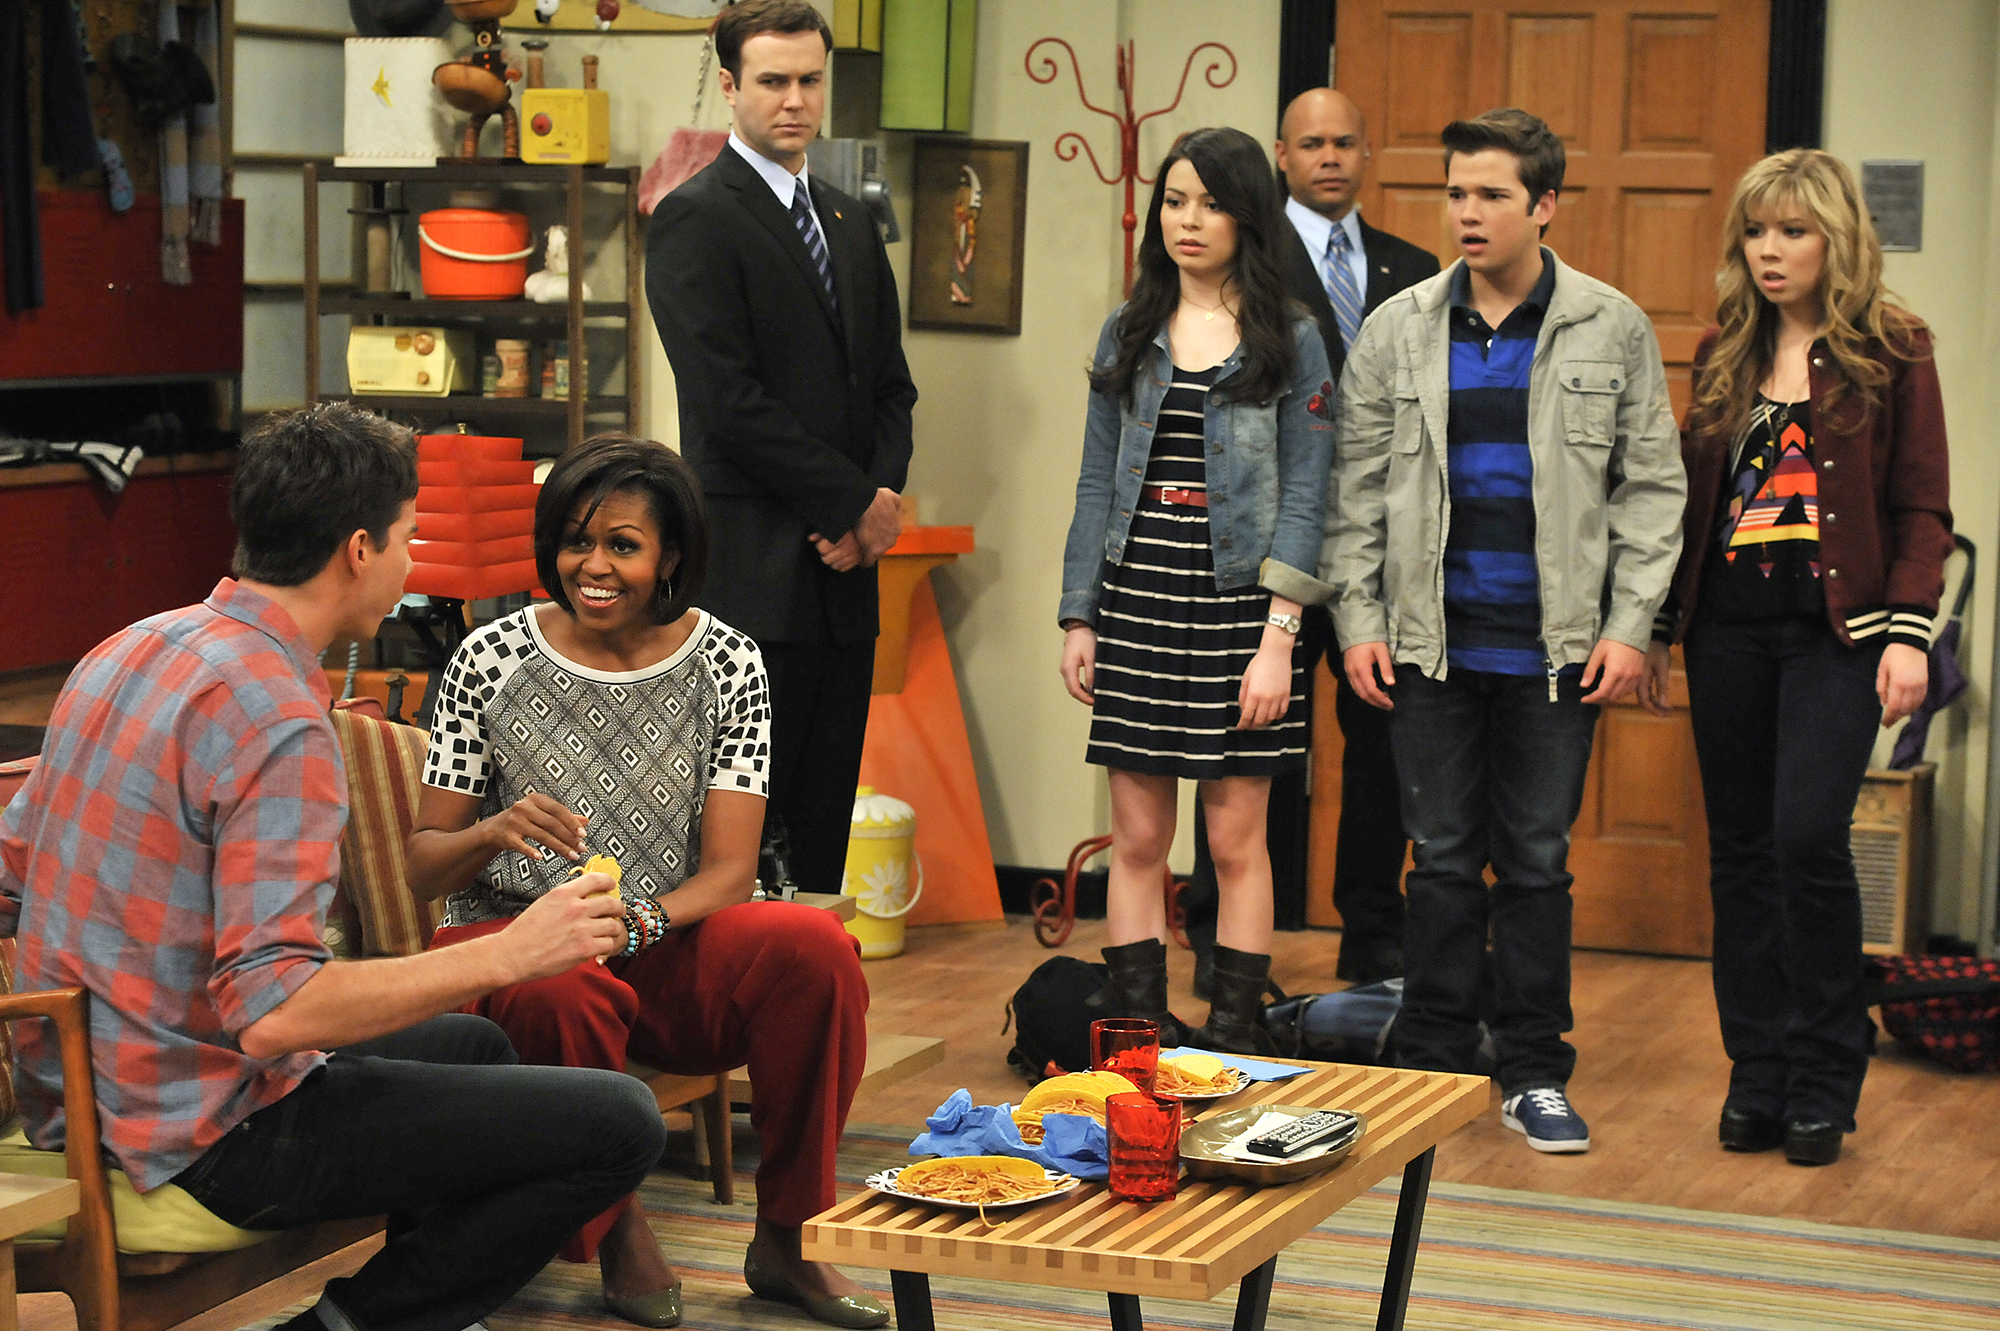 First lady Michelle Obama speaks to Jerry Trainor on iCarly, 2011.